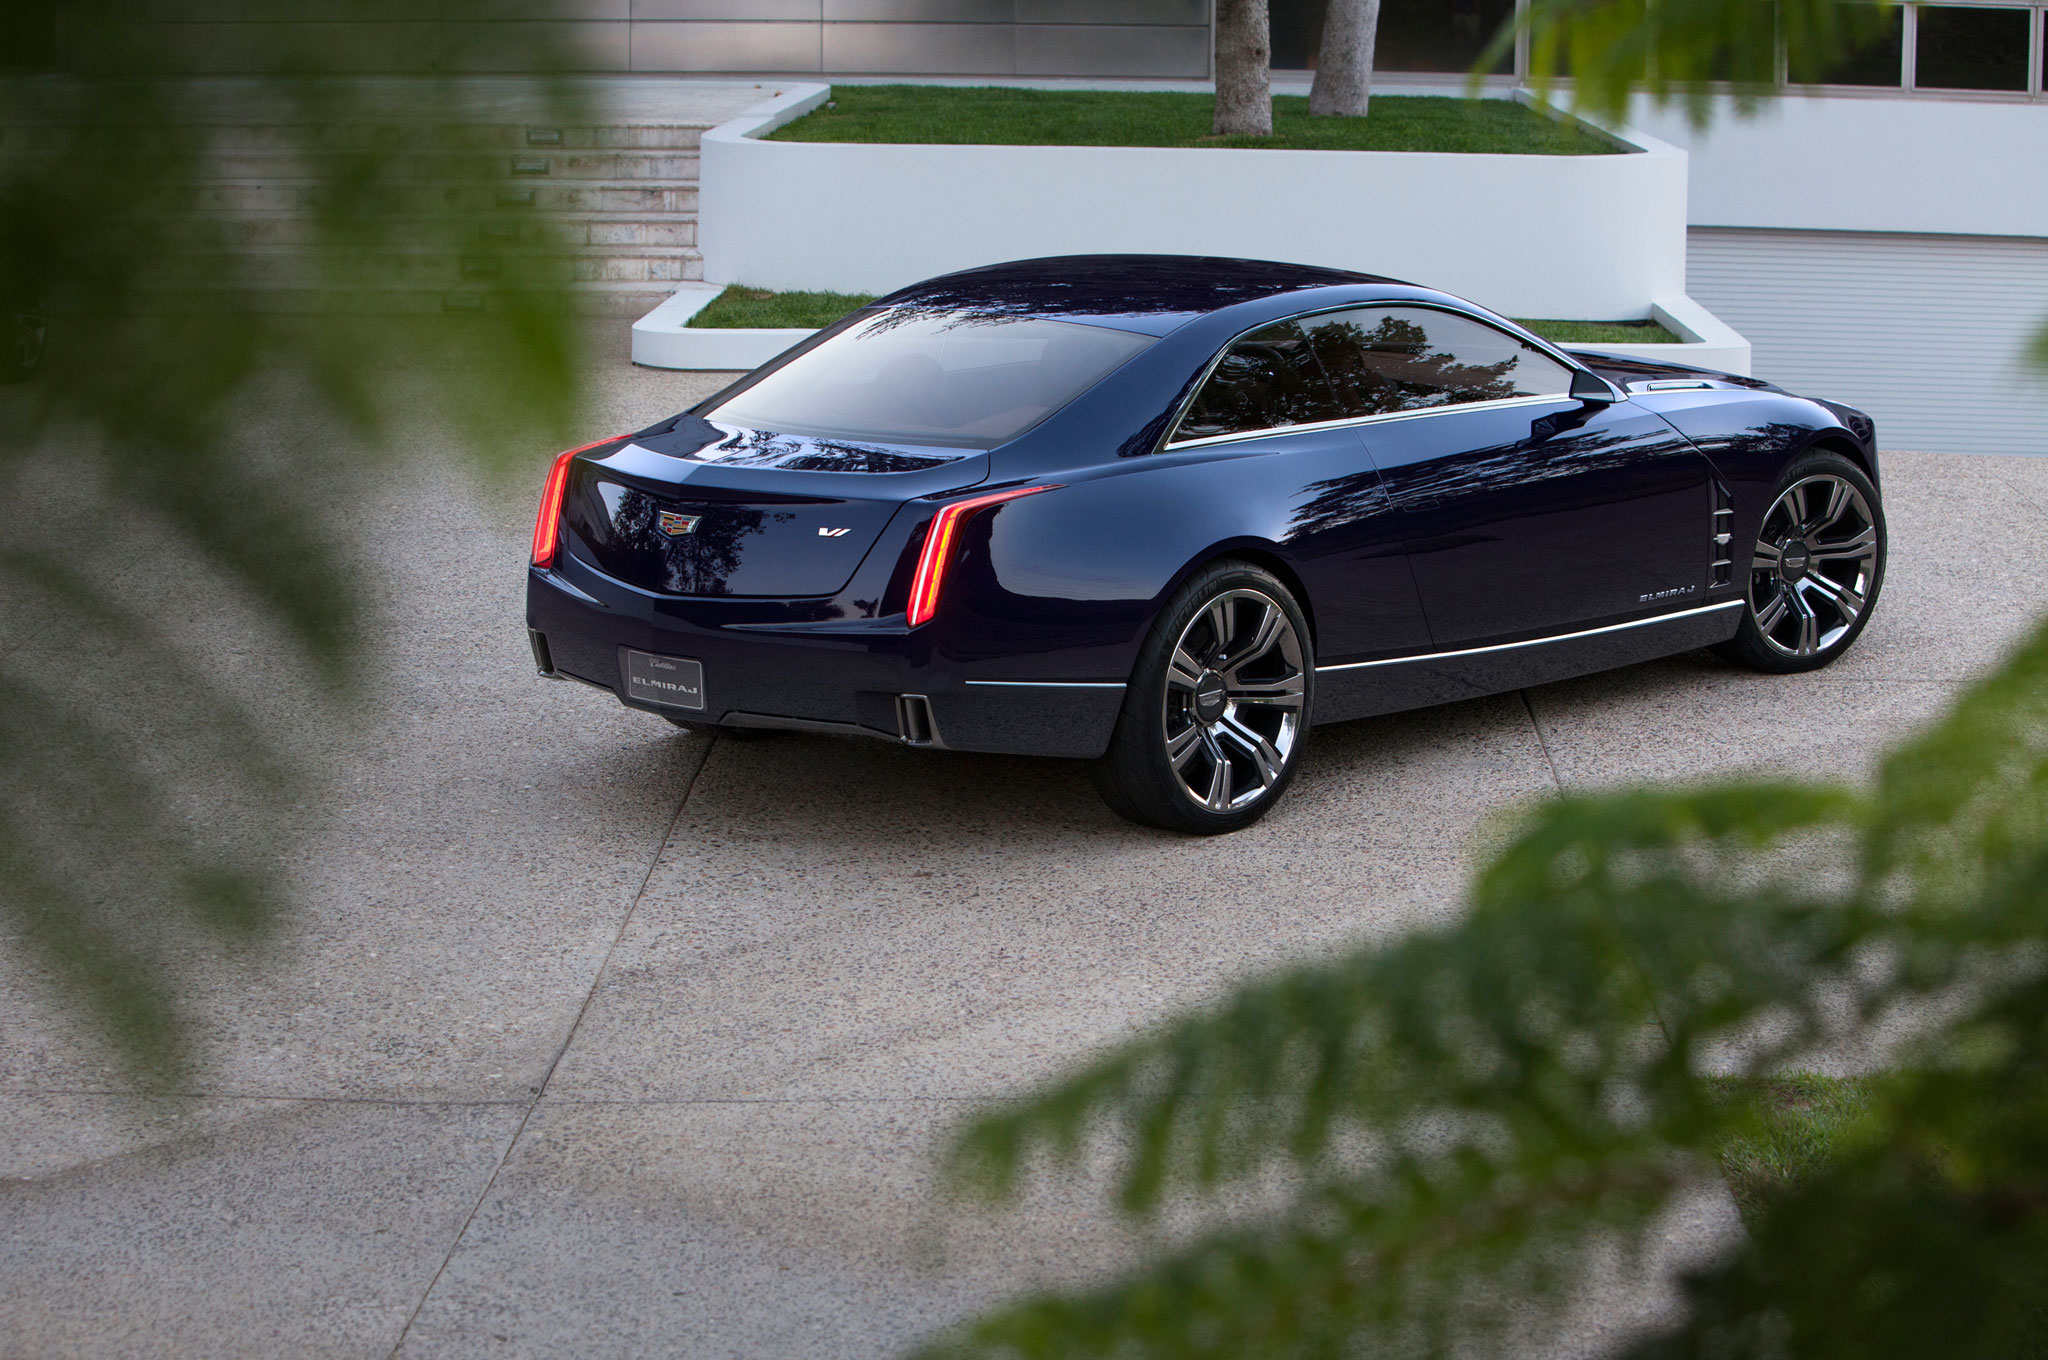 Cadillac Says S-Class Rival, ELR Successor Coming by 2020 - Automobile